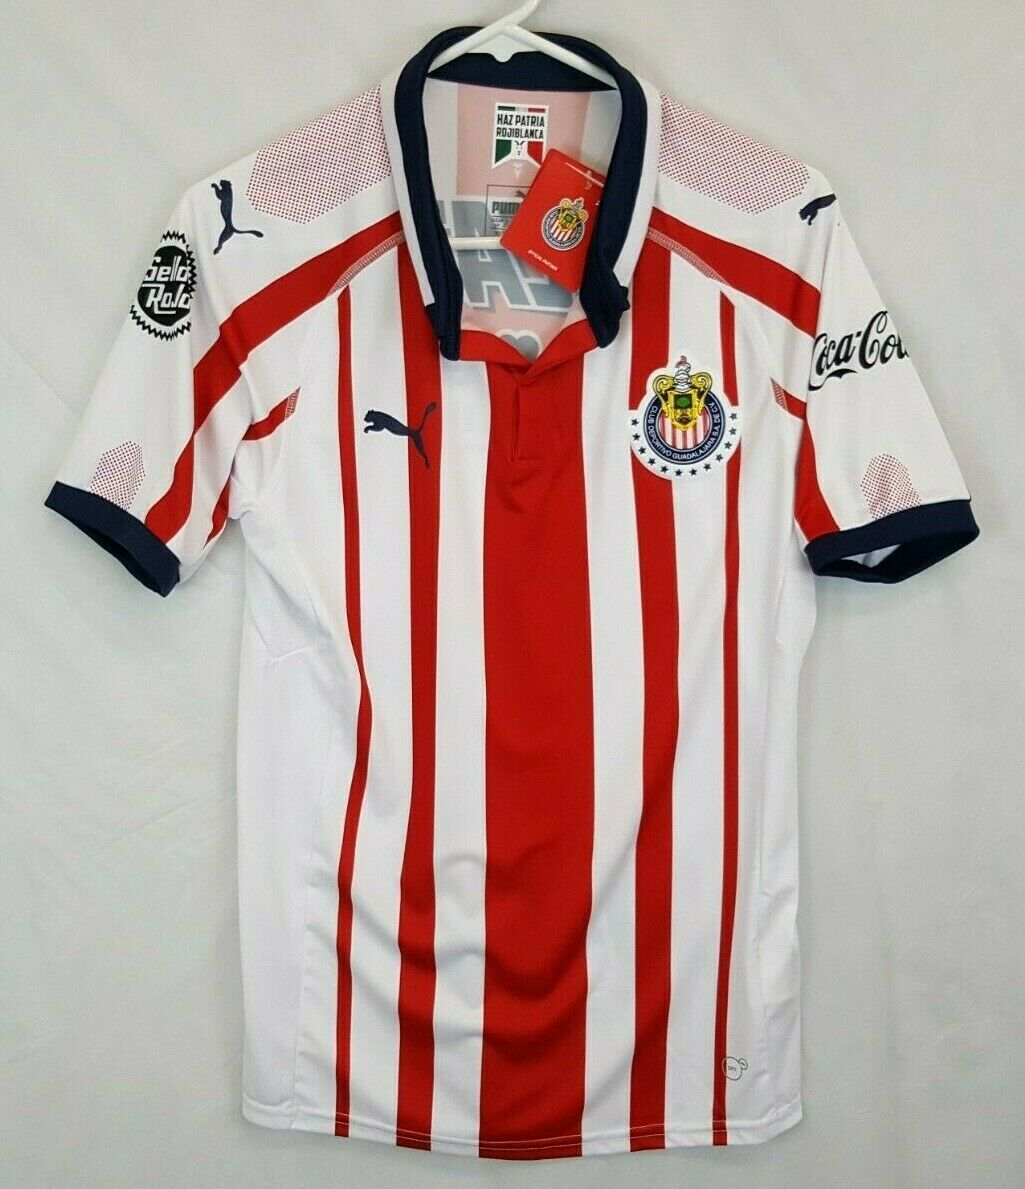 Primary image for New Chivas Stadium Home Soccer Jersey 2018/19 PUMA original Size Small